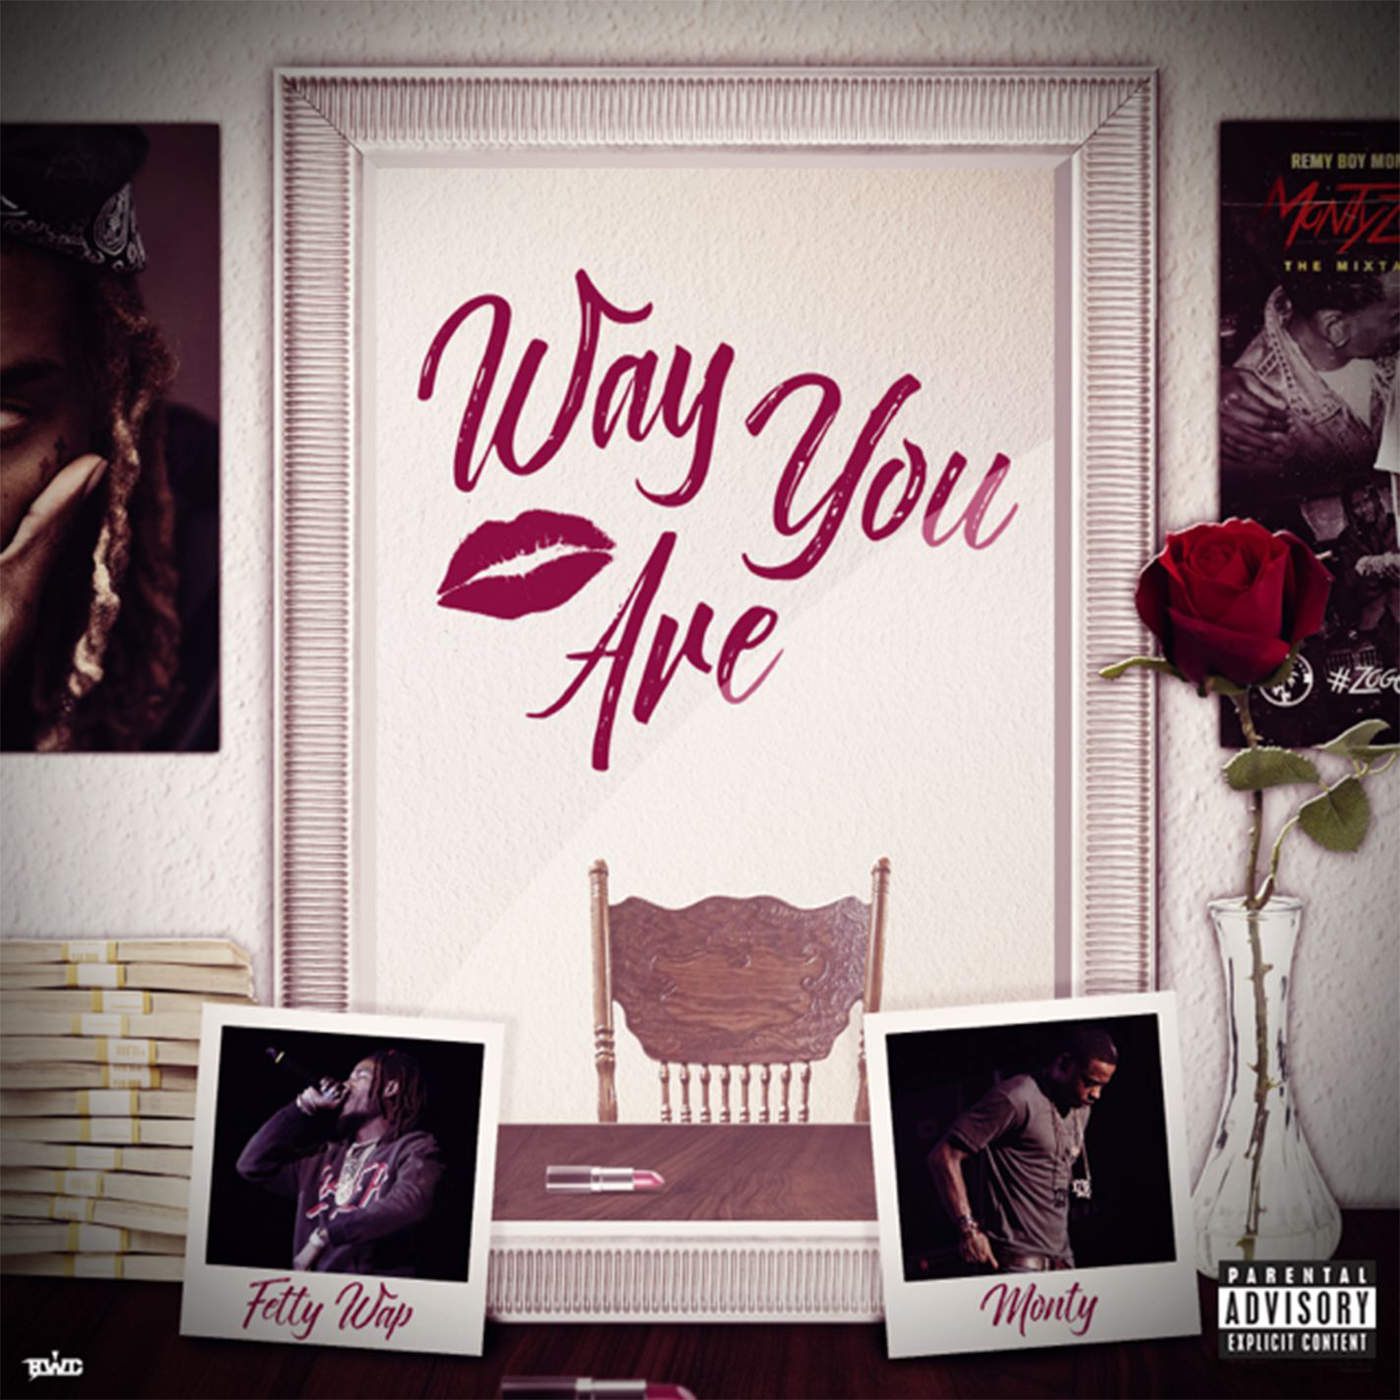 Fetty Wap - Way You Are (feat. Monty) - Single Cover